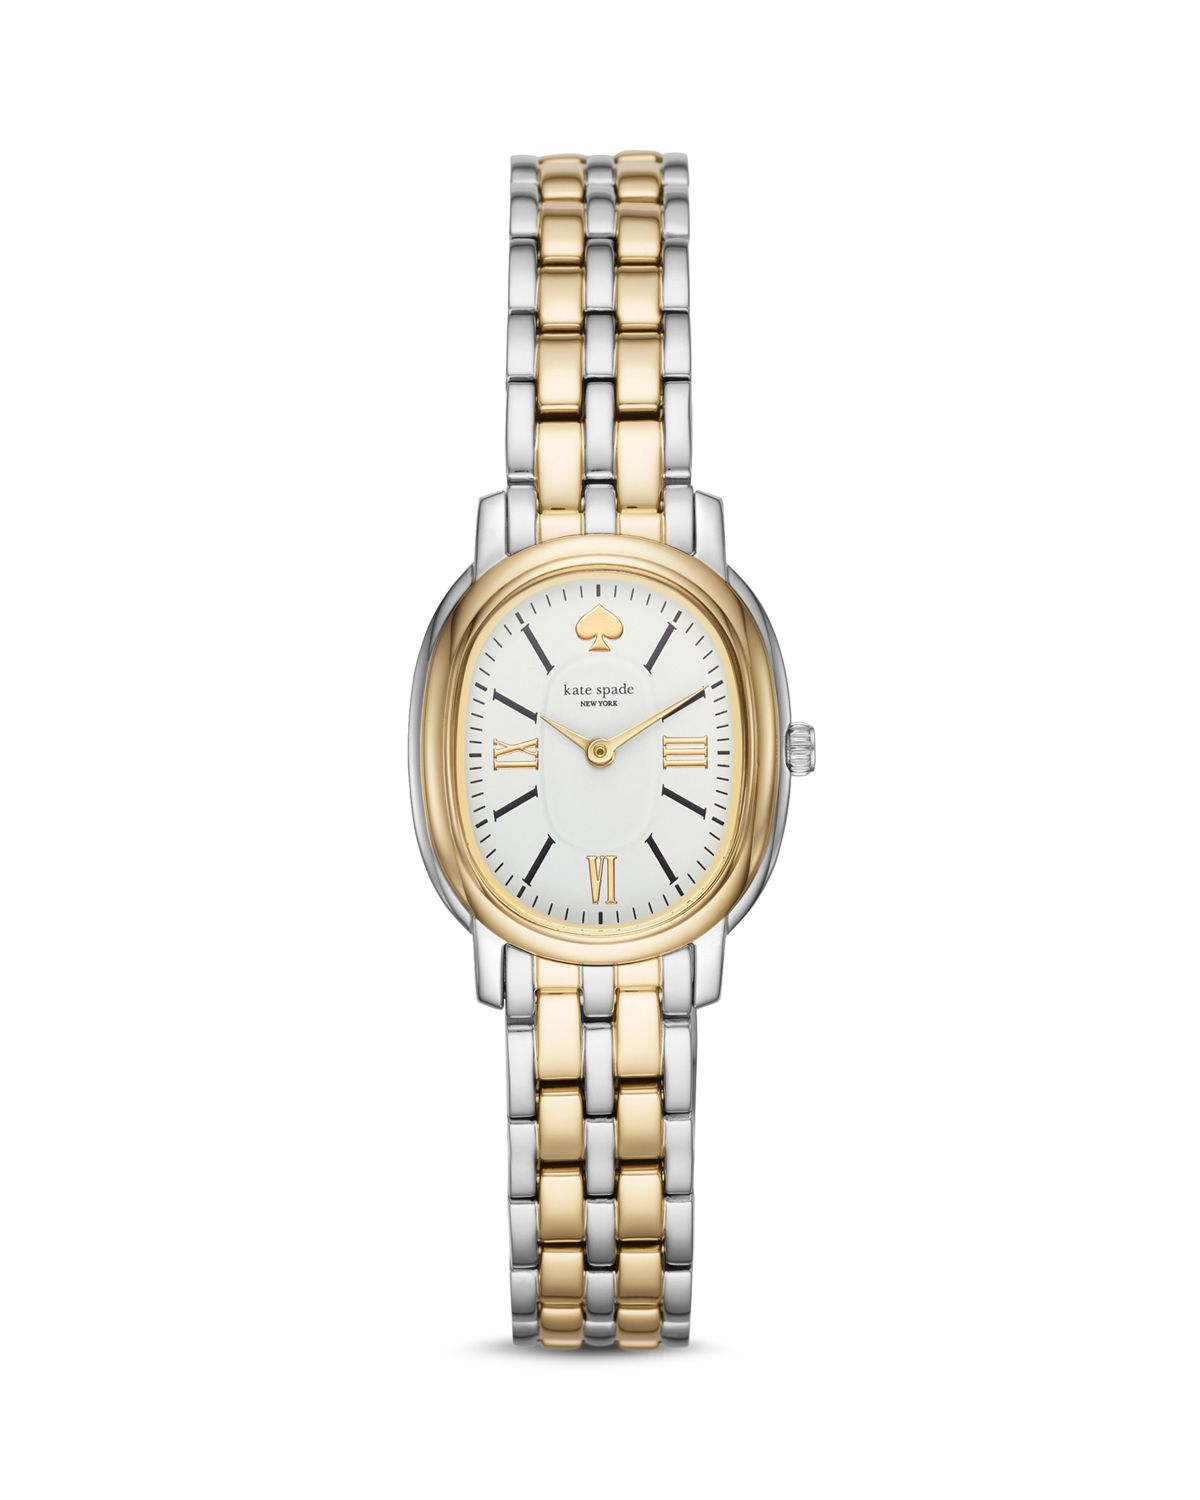 Two Tone Staten Watch, 25mm by Kate Spade New York